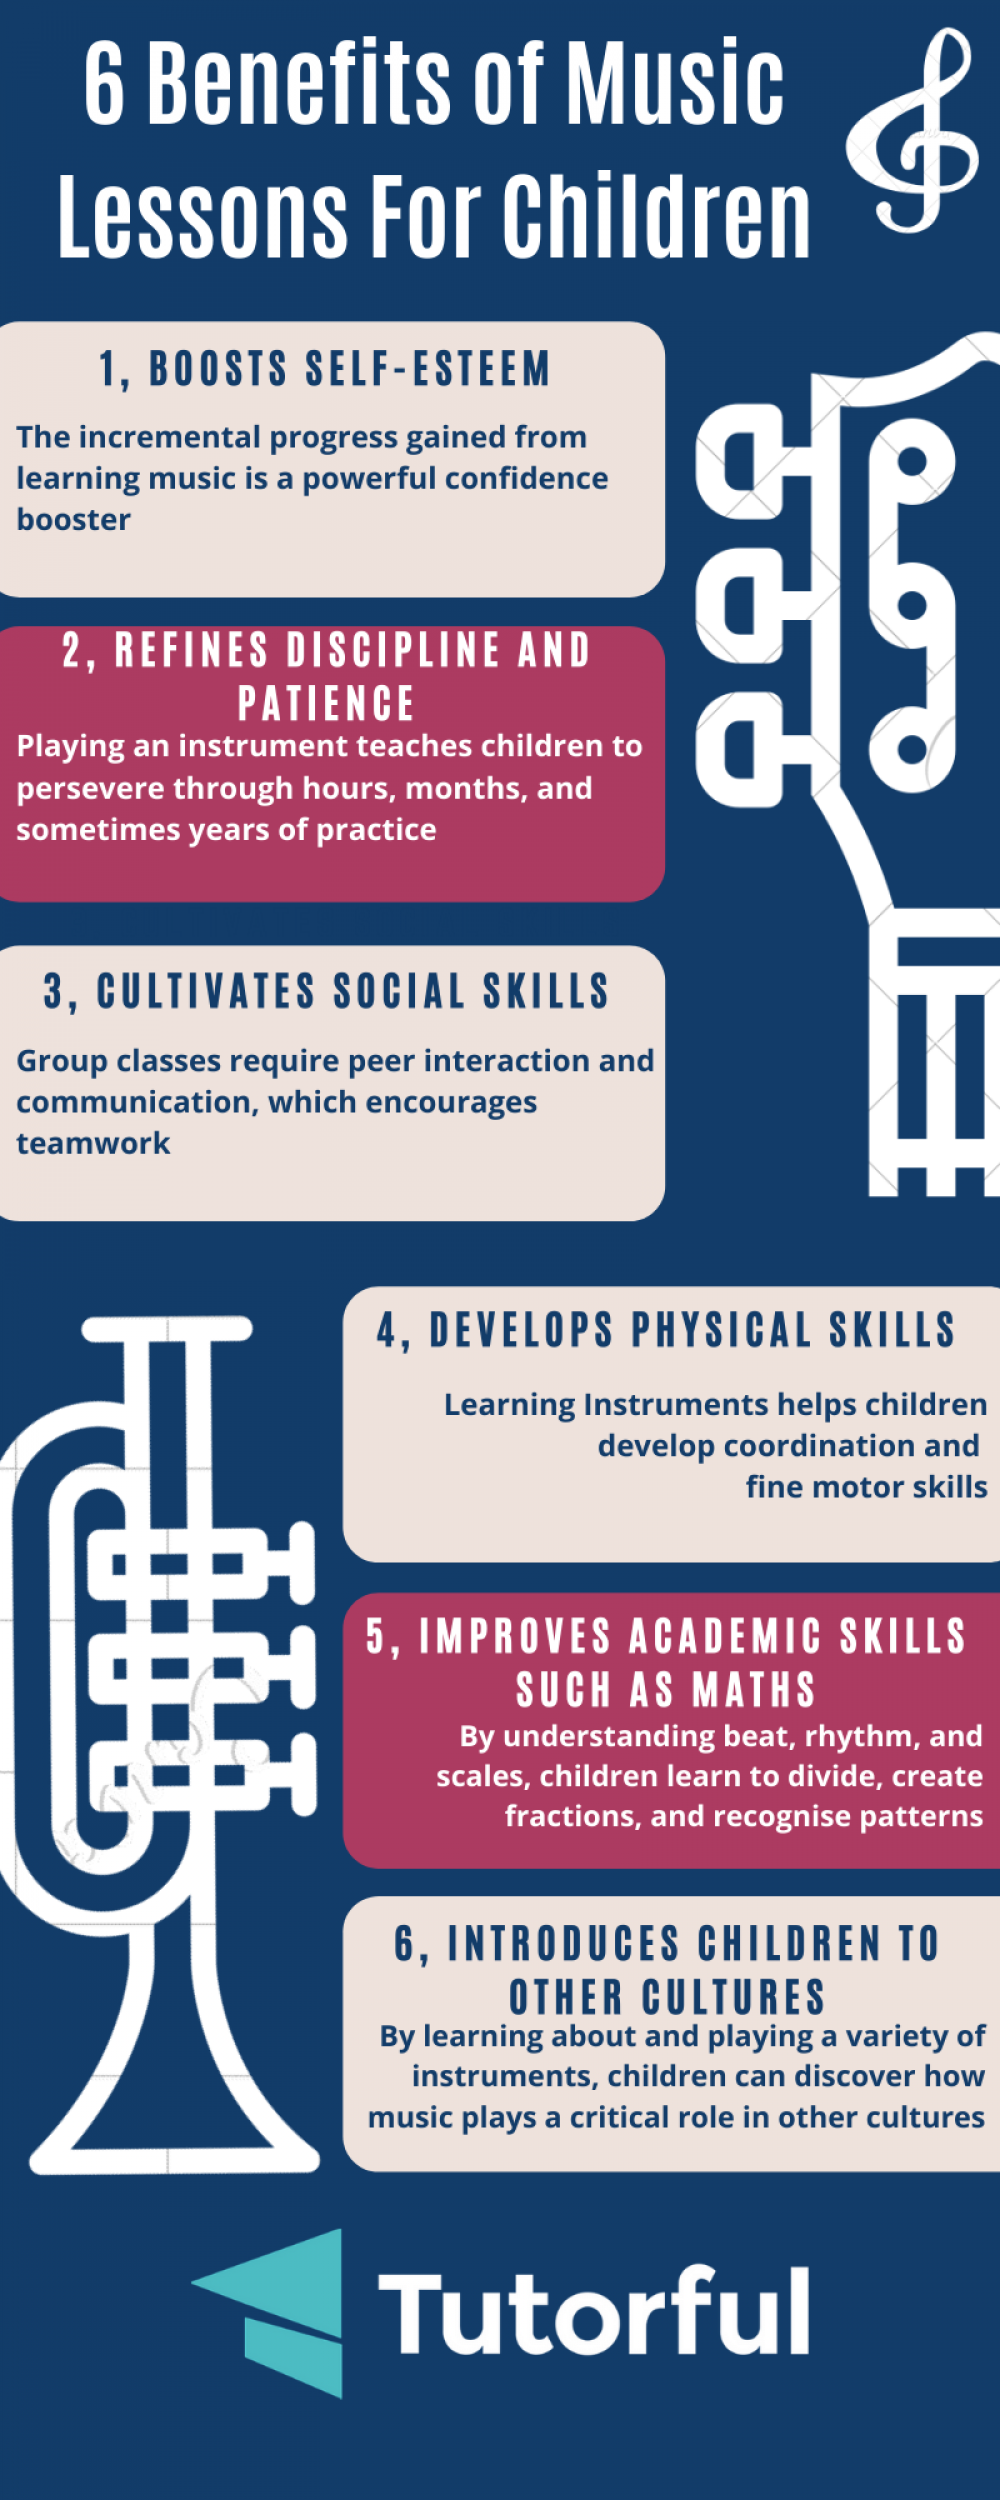 Infographic on 6 benefits of music lessons for children